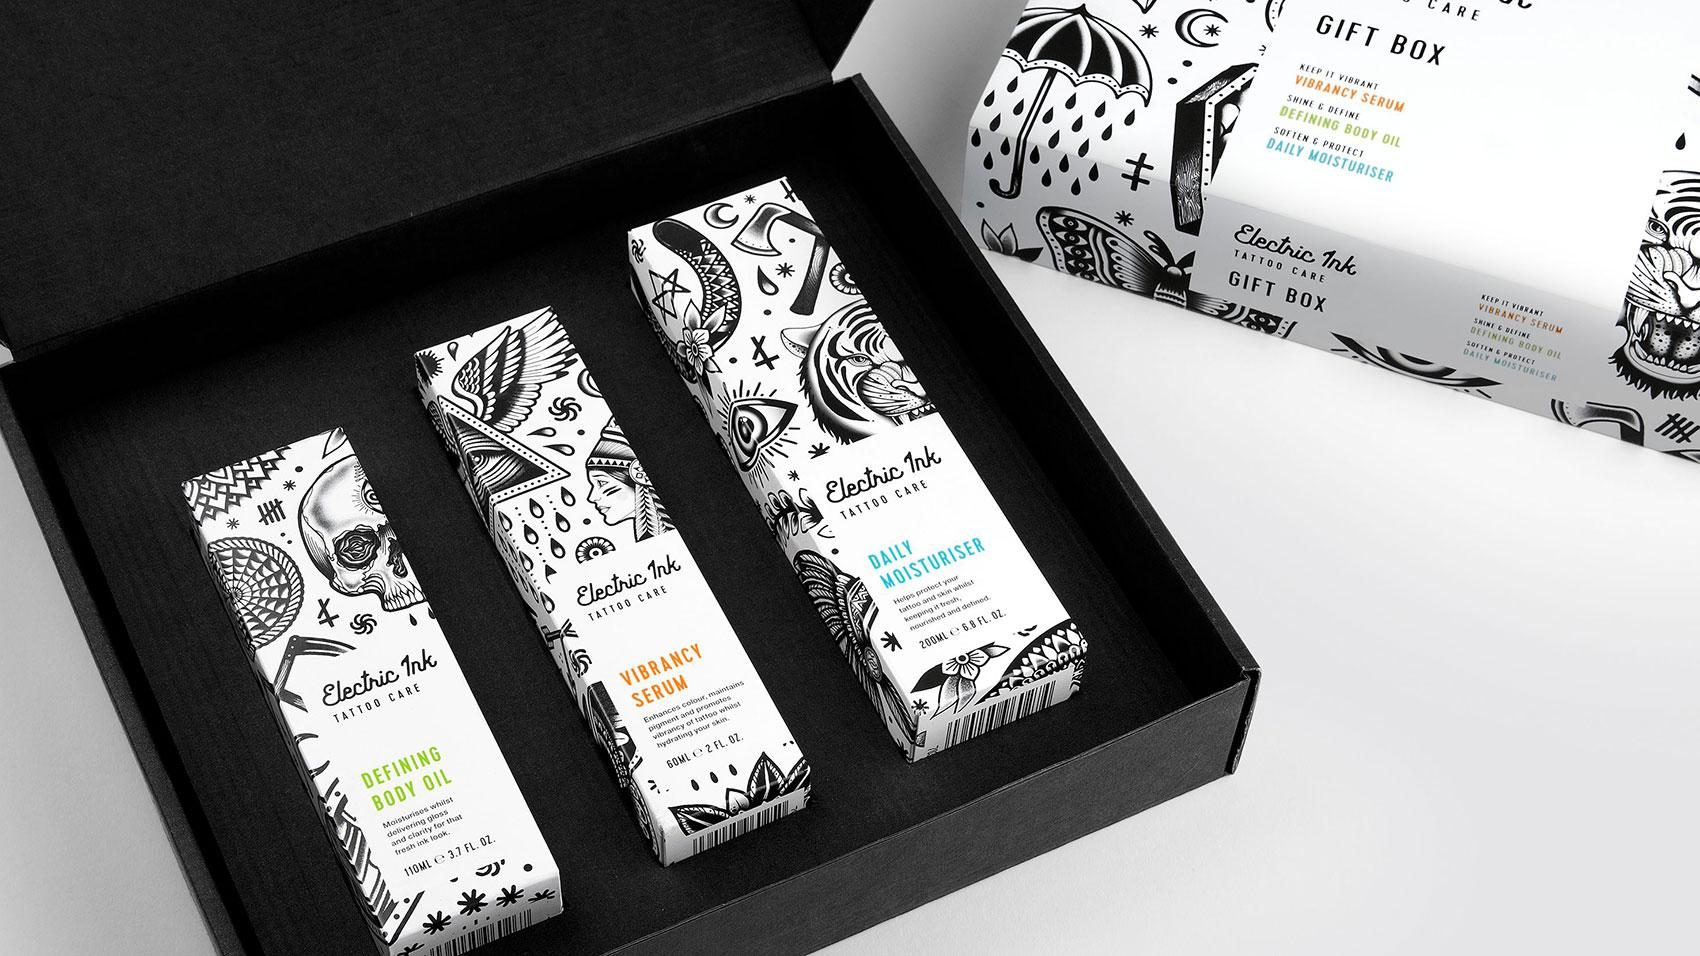 Robot Food took inspiration from tattoo culture in this project for beauty brand Electronic Ink